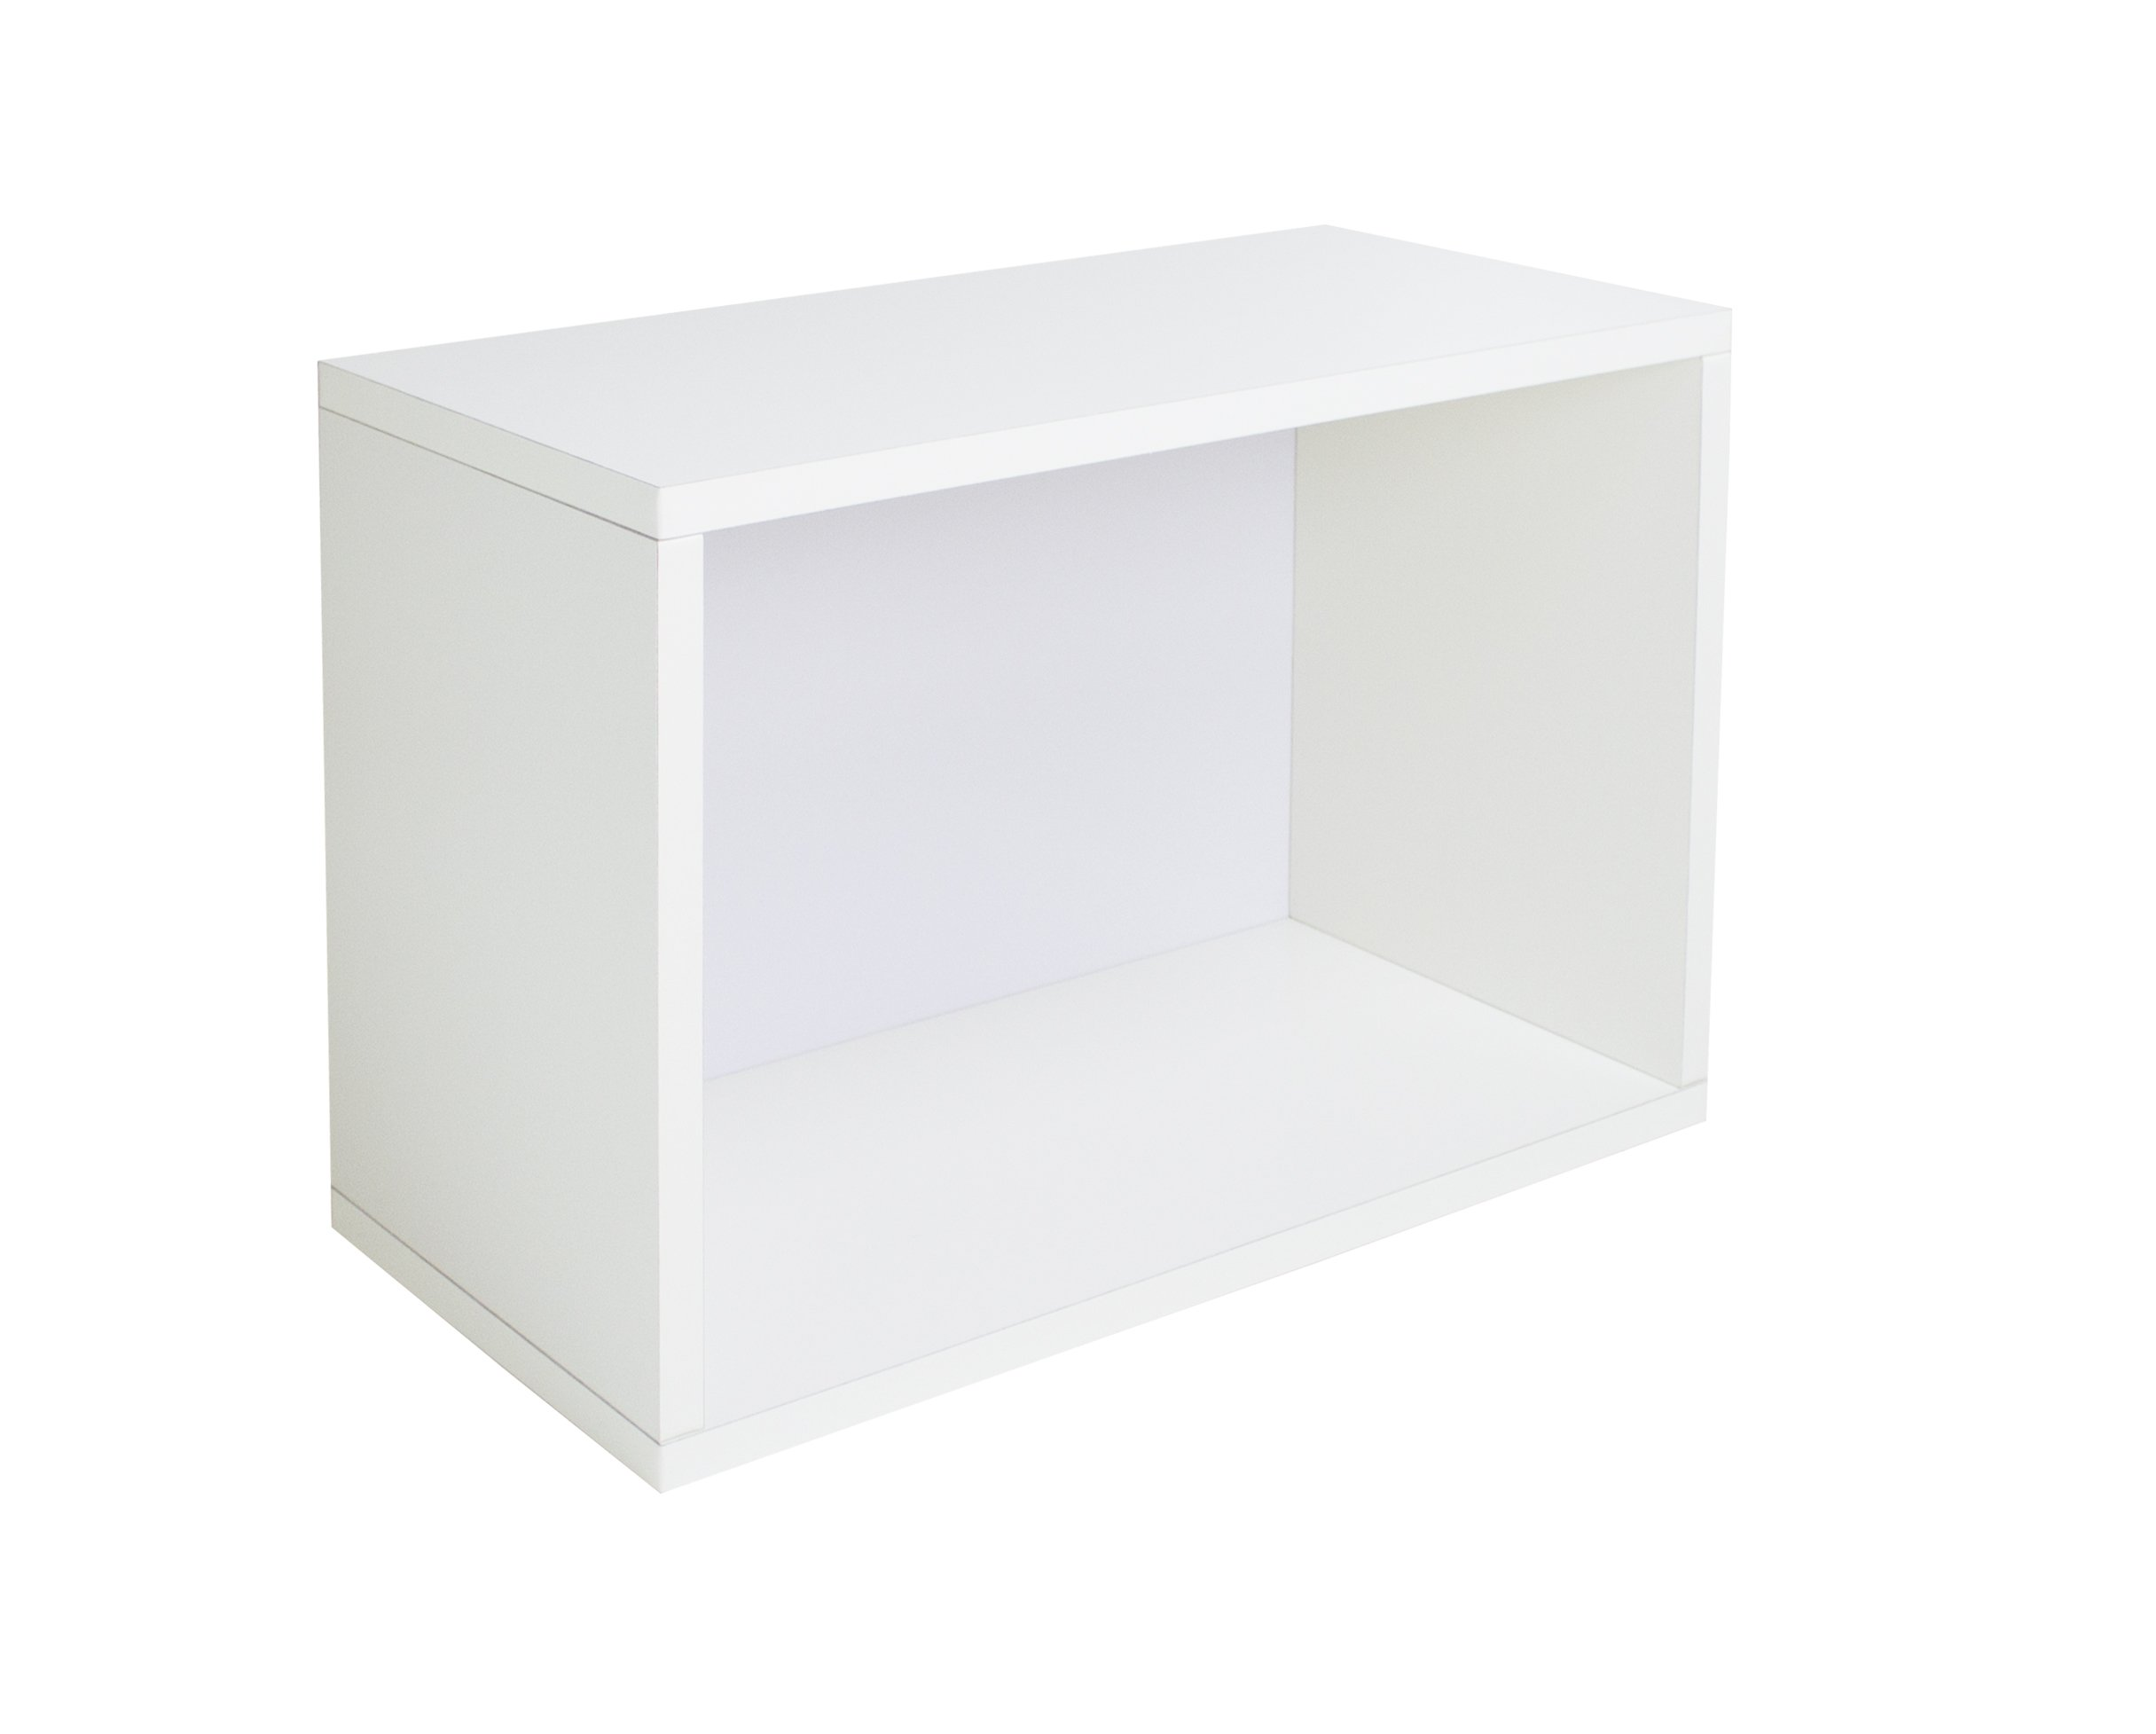 Way Basics Eco Stackable Shelf and Shoe Rack, White (made from sustainable non-toxic zBoard paperboard)